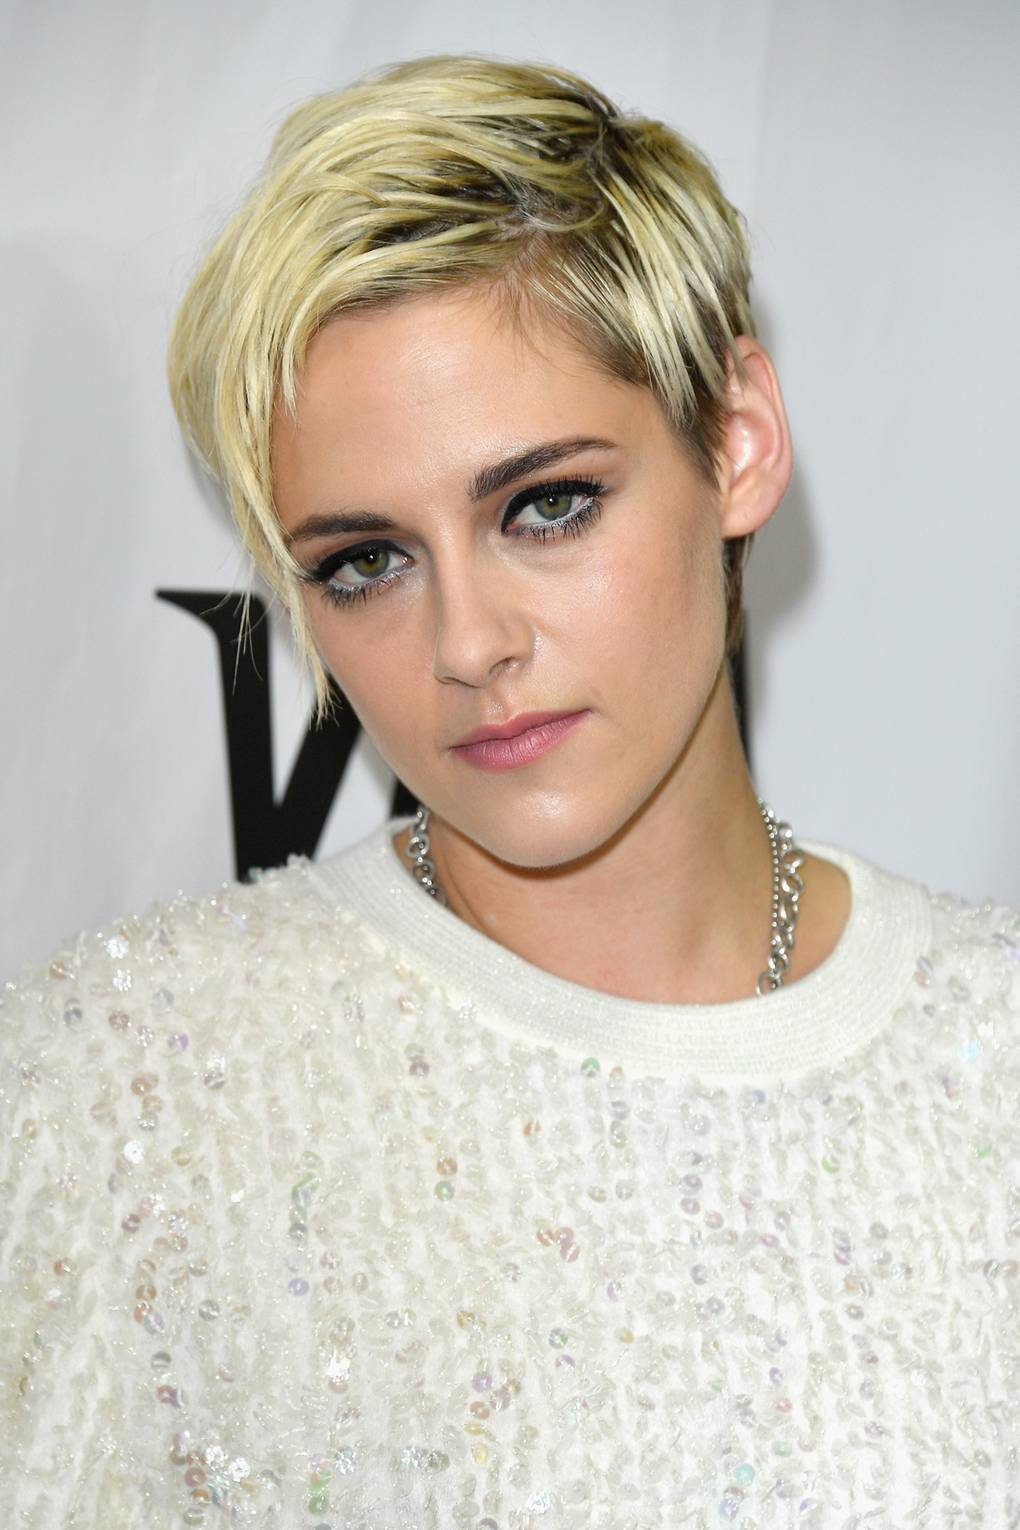 Kristen Stewart Hairstyle Hair Colour Pictures 2002 To 2012